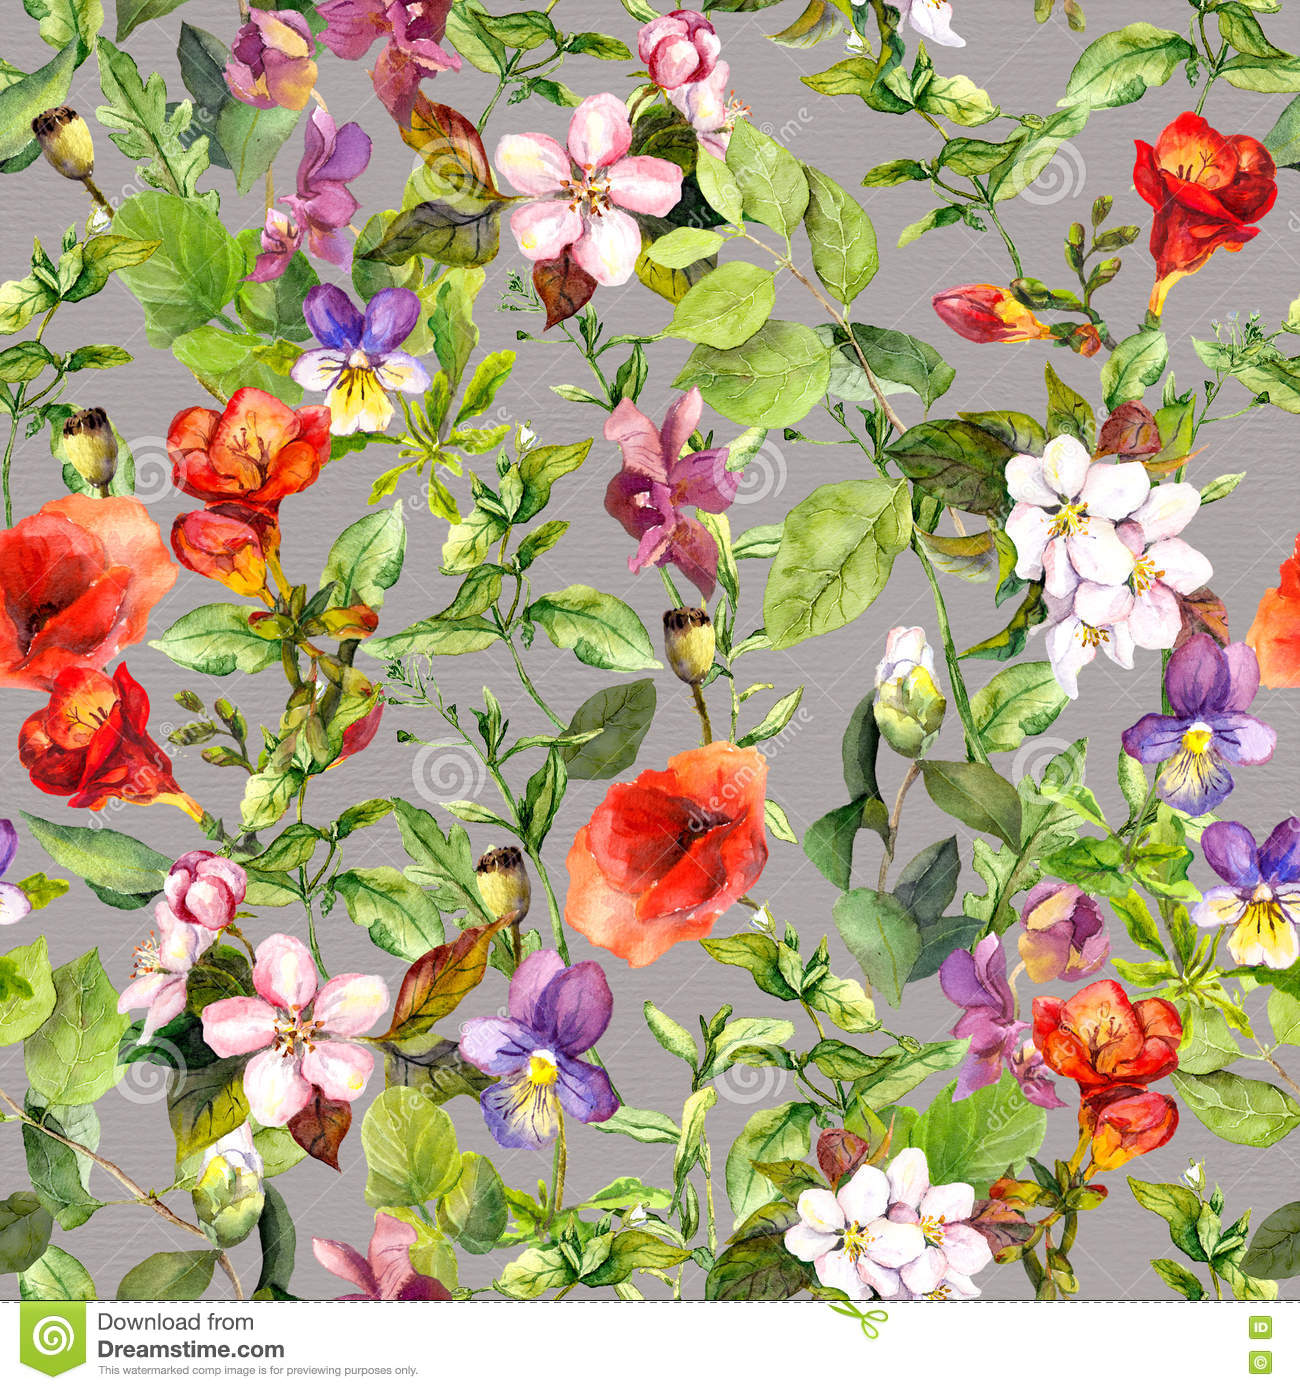 vintage repeating wallpaper - photo #34